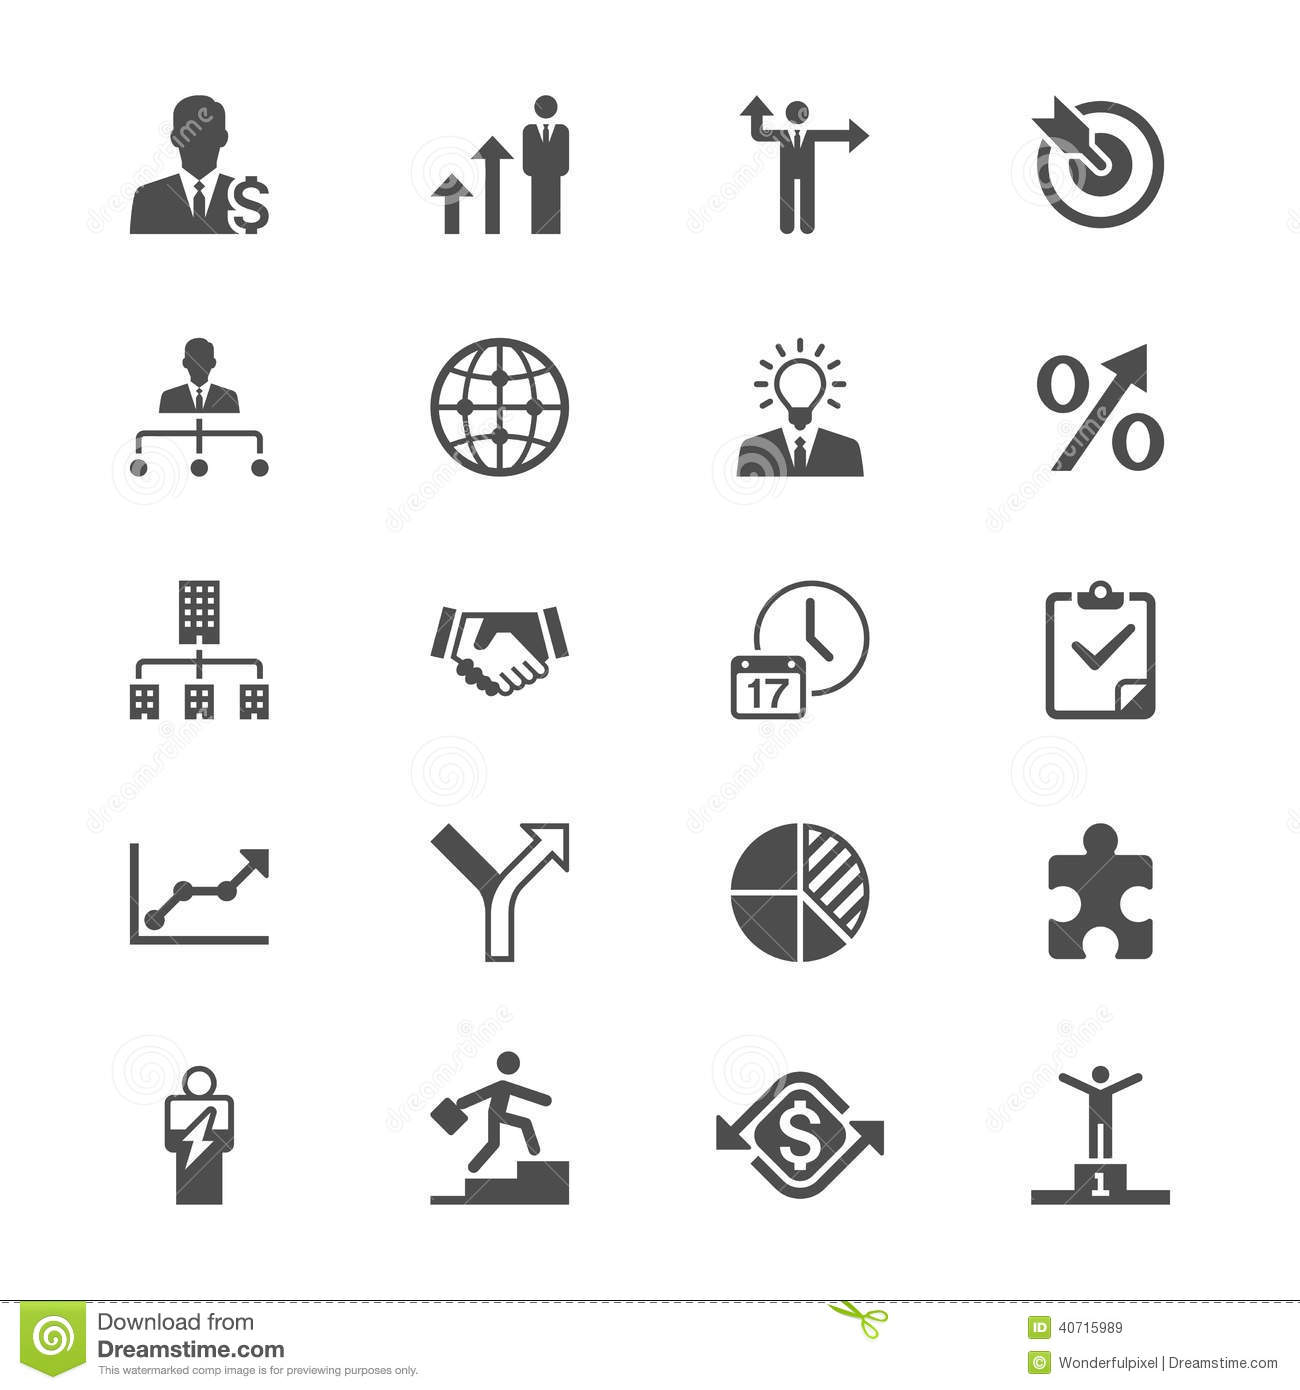 Business flat icons